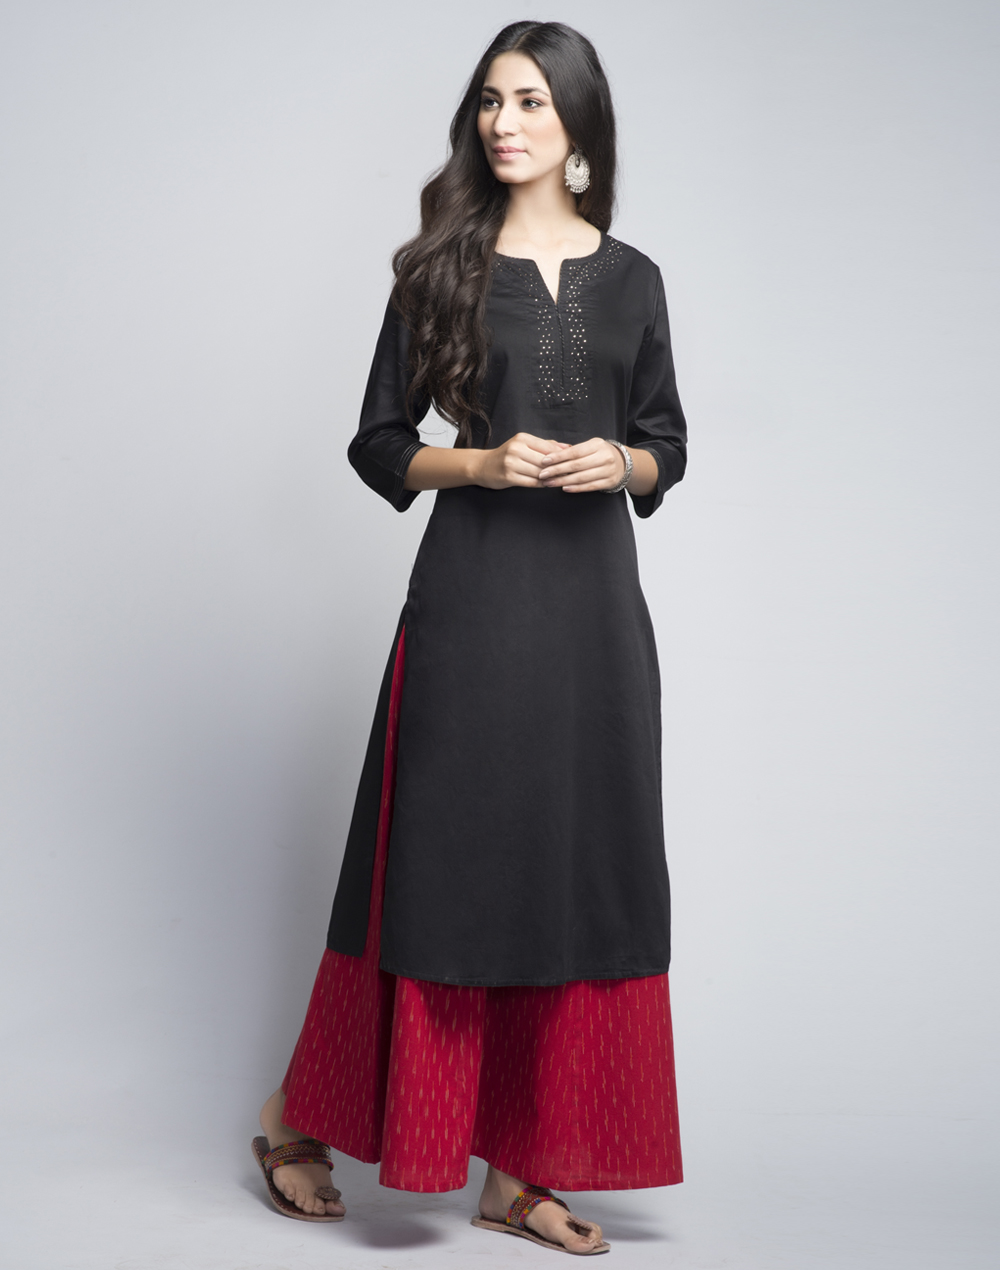 32eead595be 7 Indian Ethnic Wear Brands You Need To Have - 1GrandTrunk